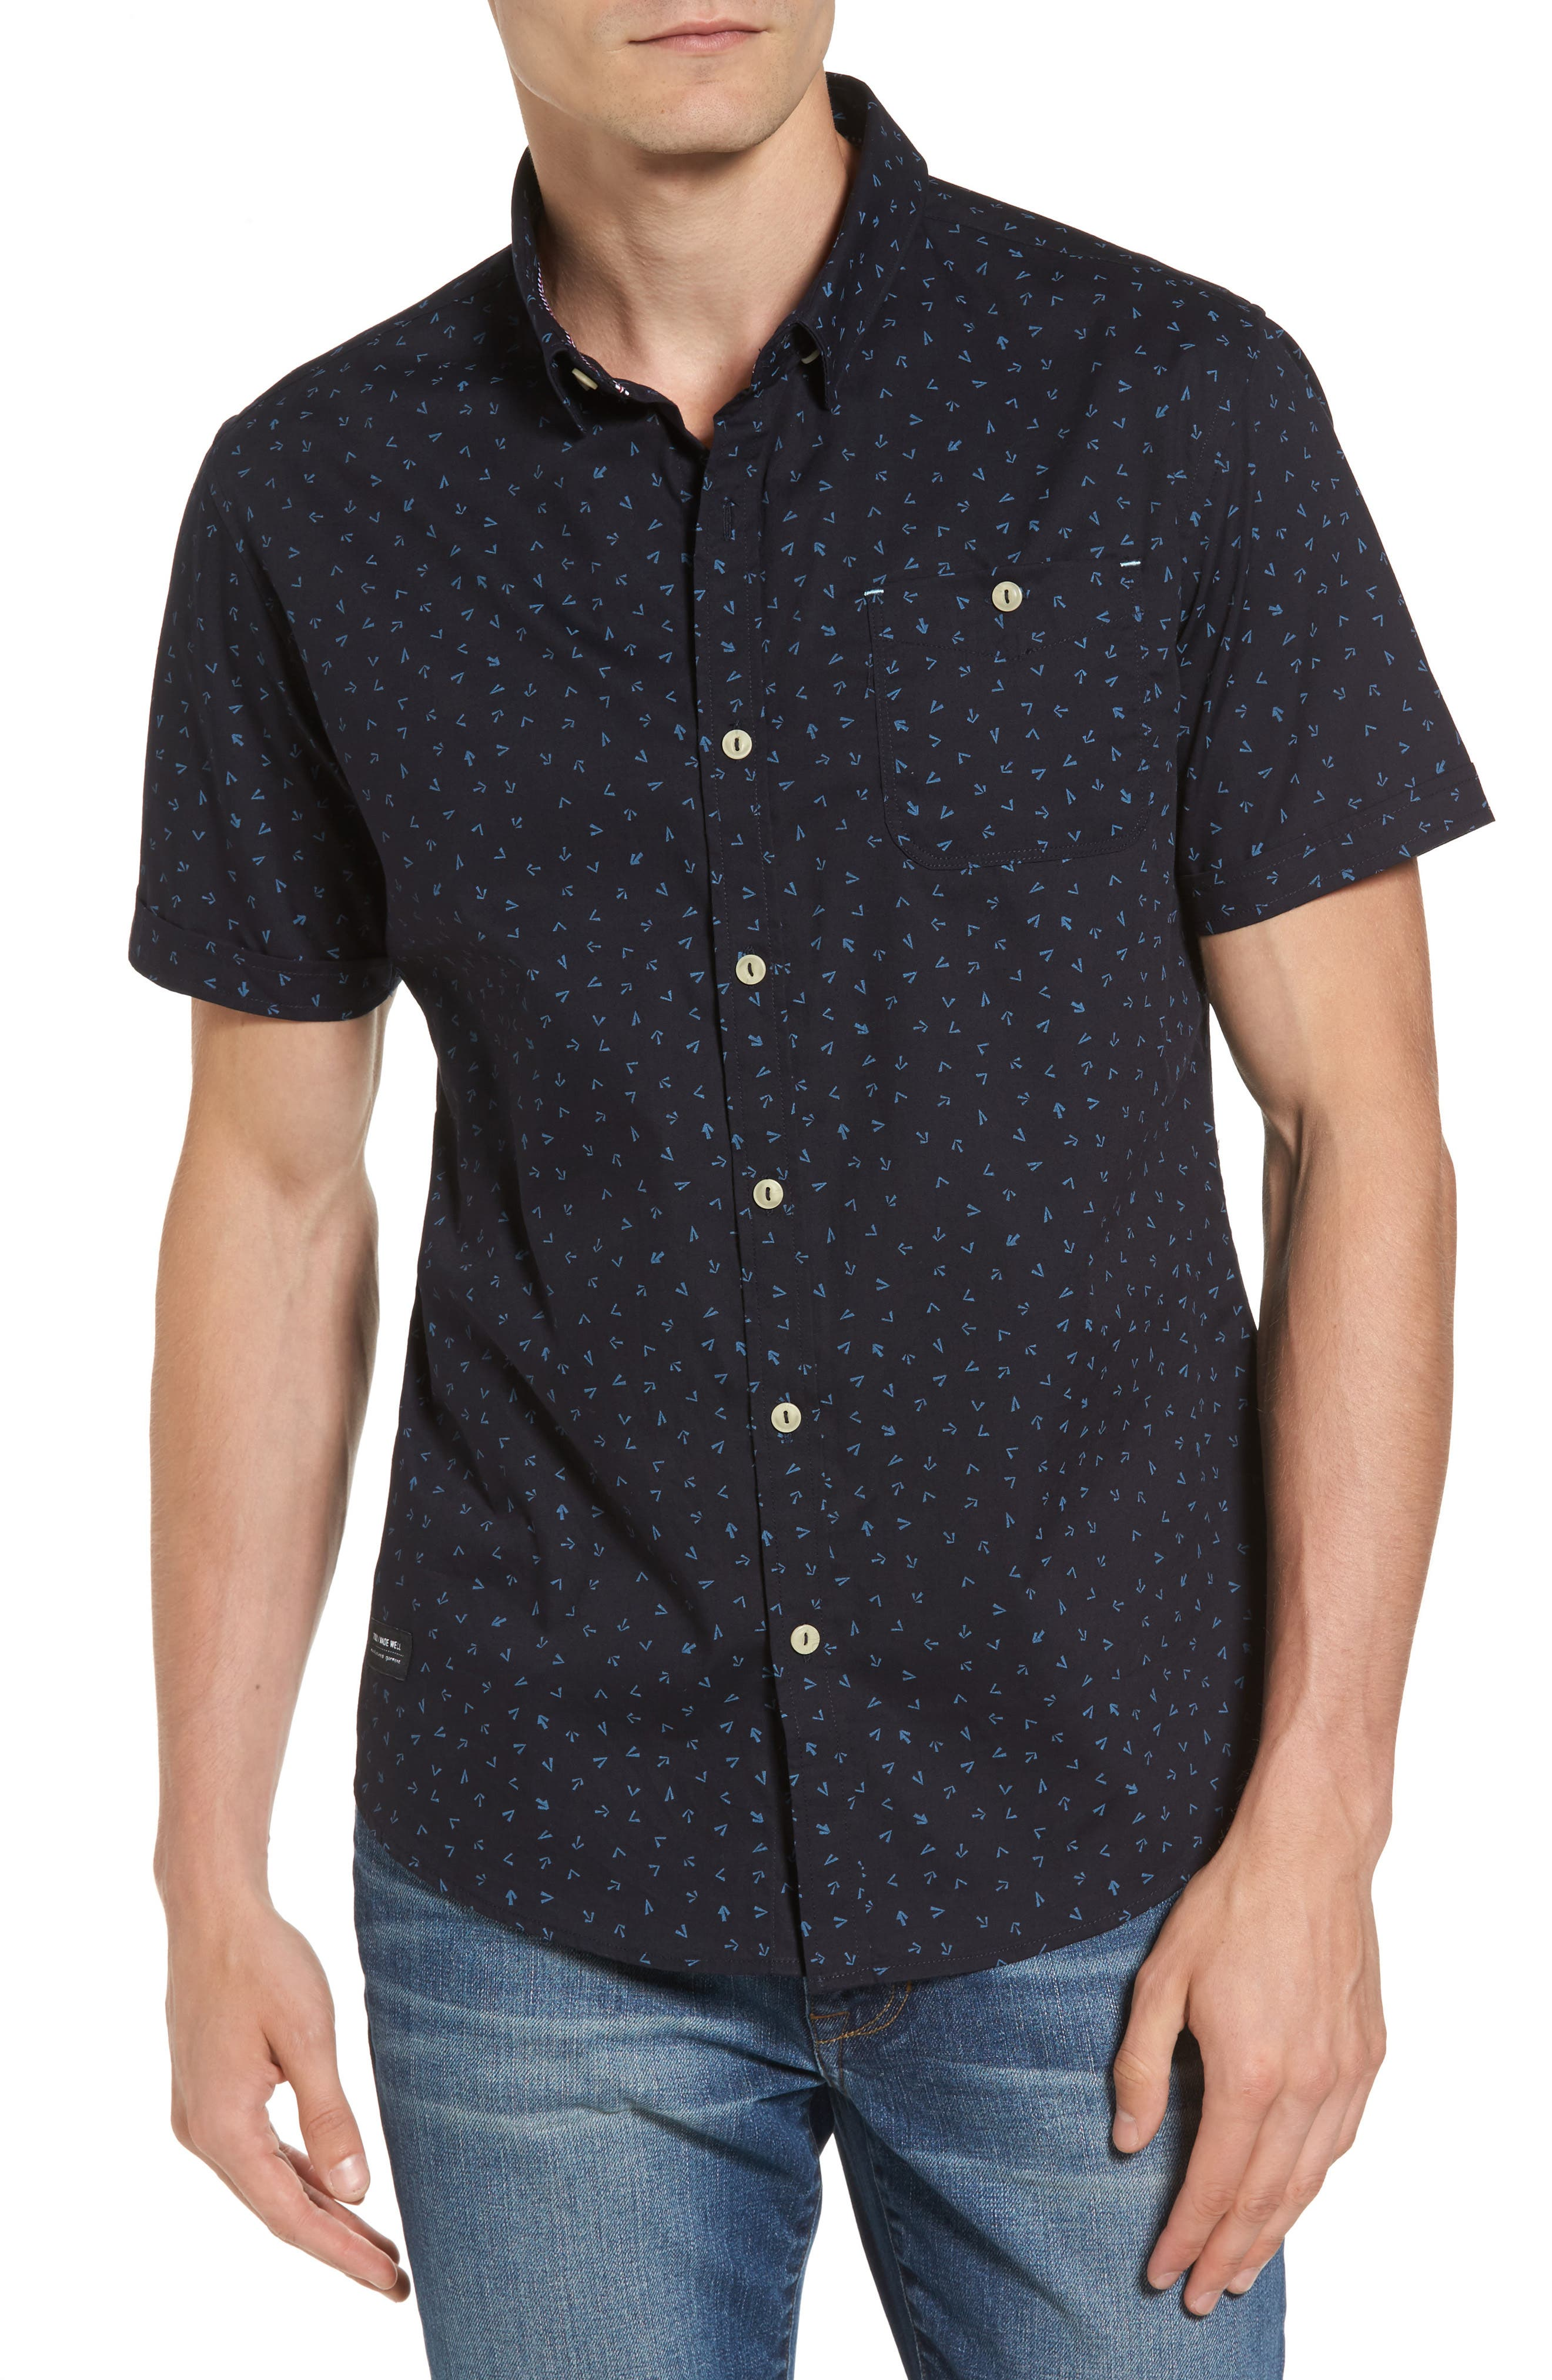 7 DIAMONDS New Tradition Print Woven Shirt